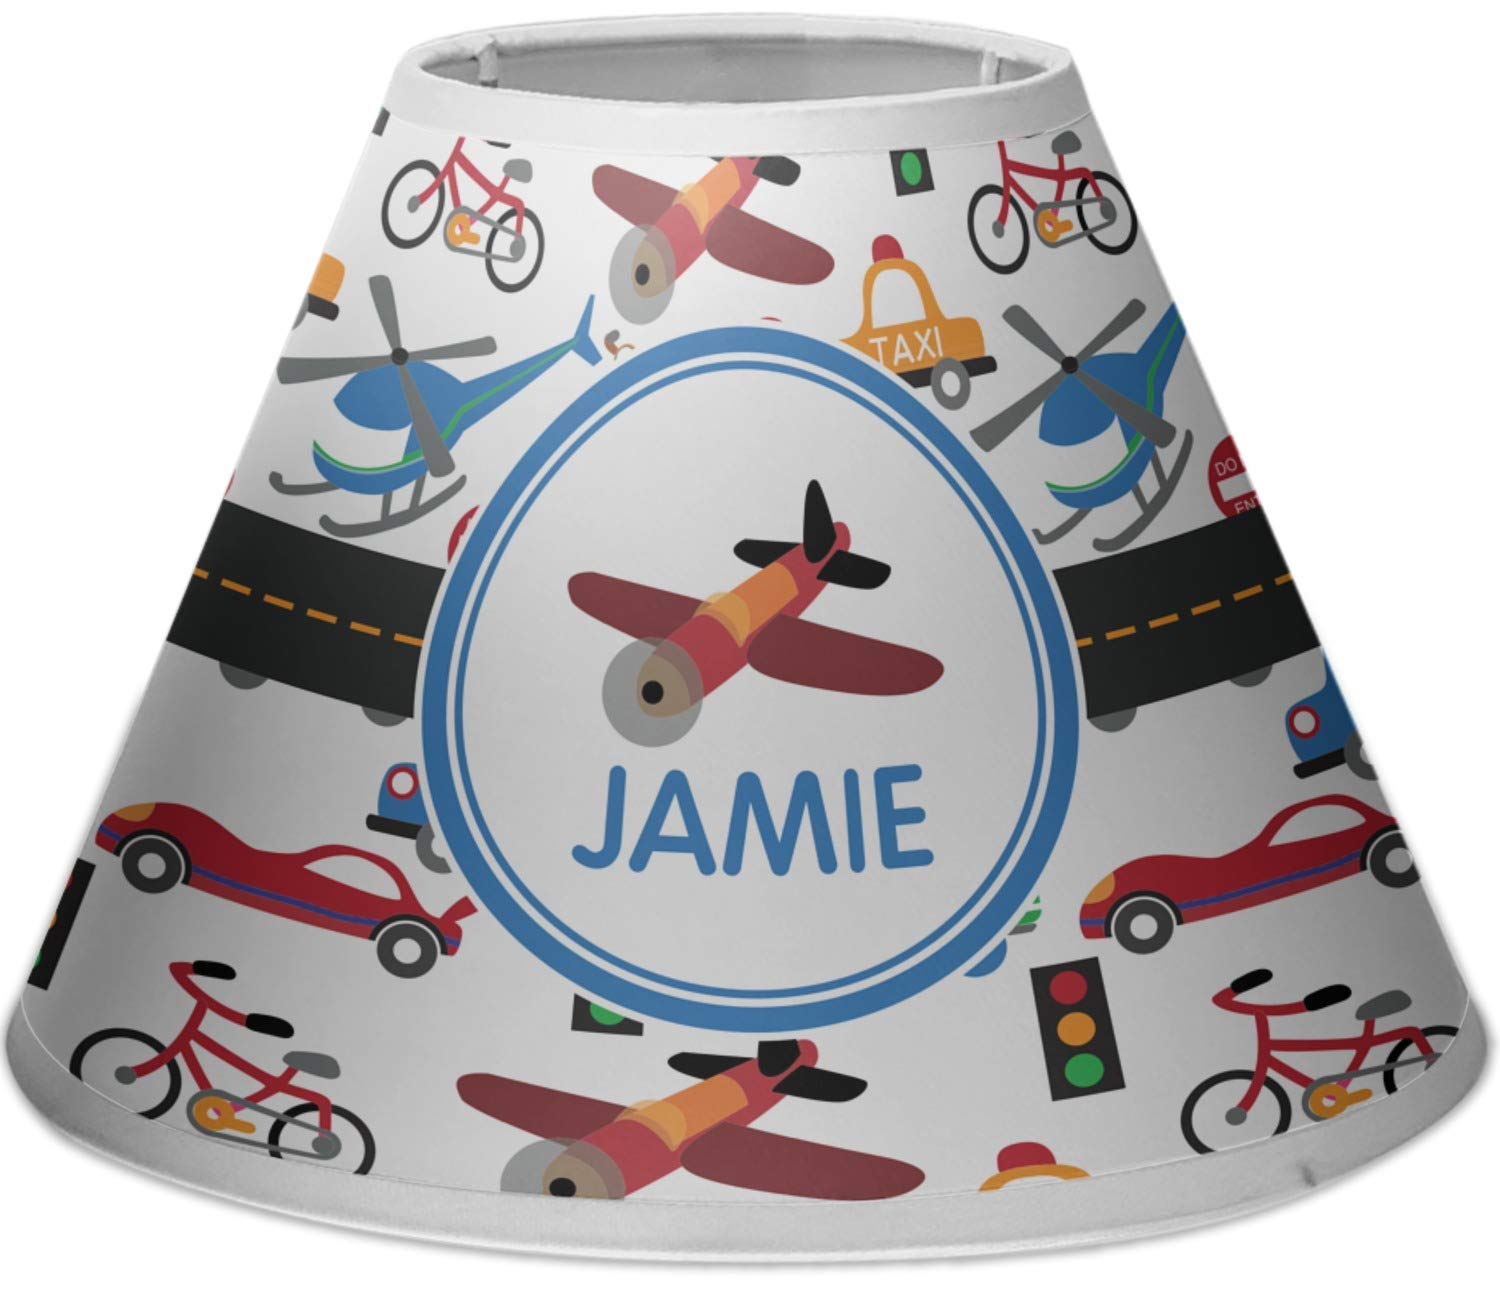 RNK Shops Transportation Empire Lamp Shade (Personalized) by RNK Shops